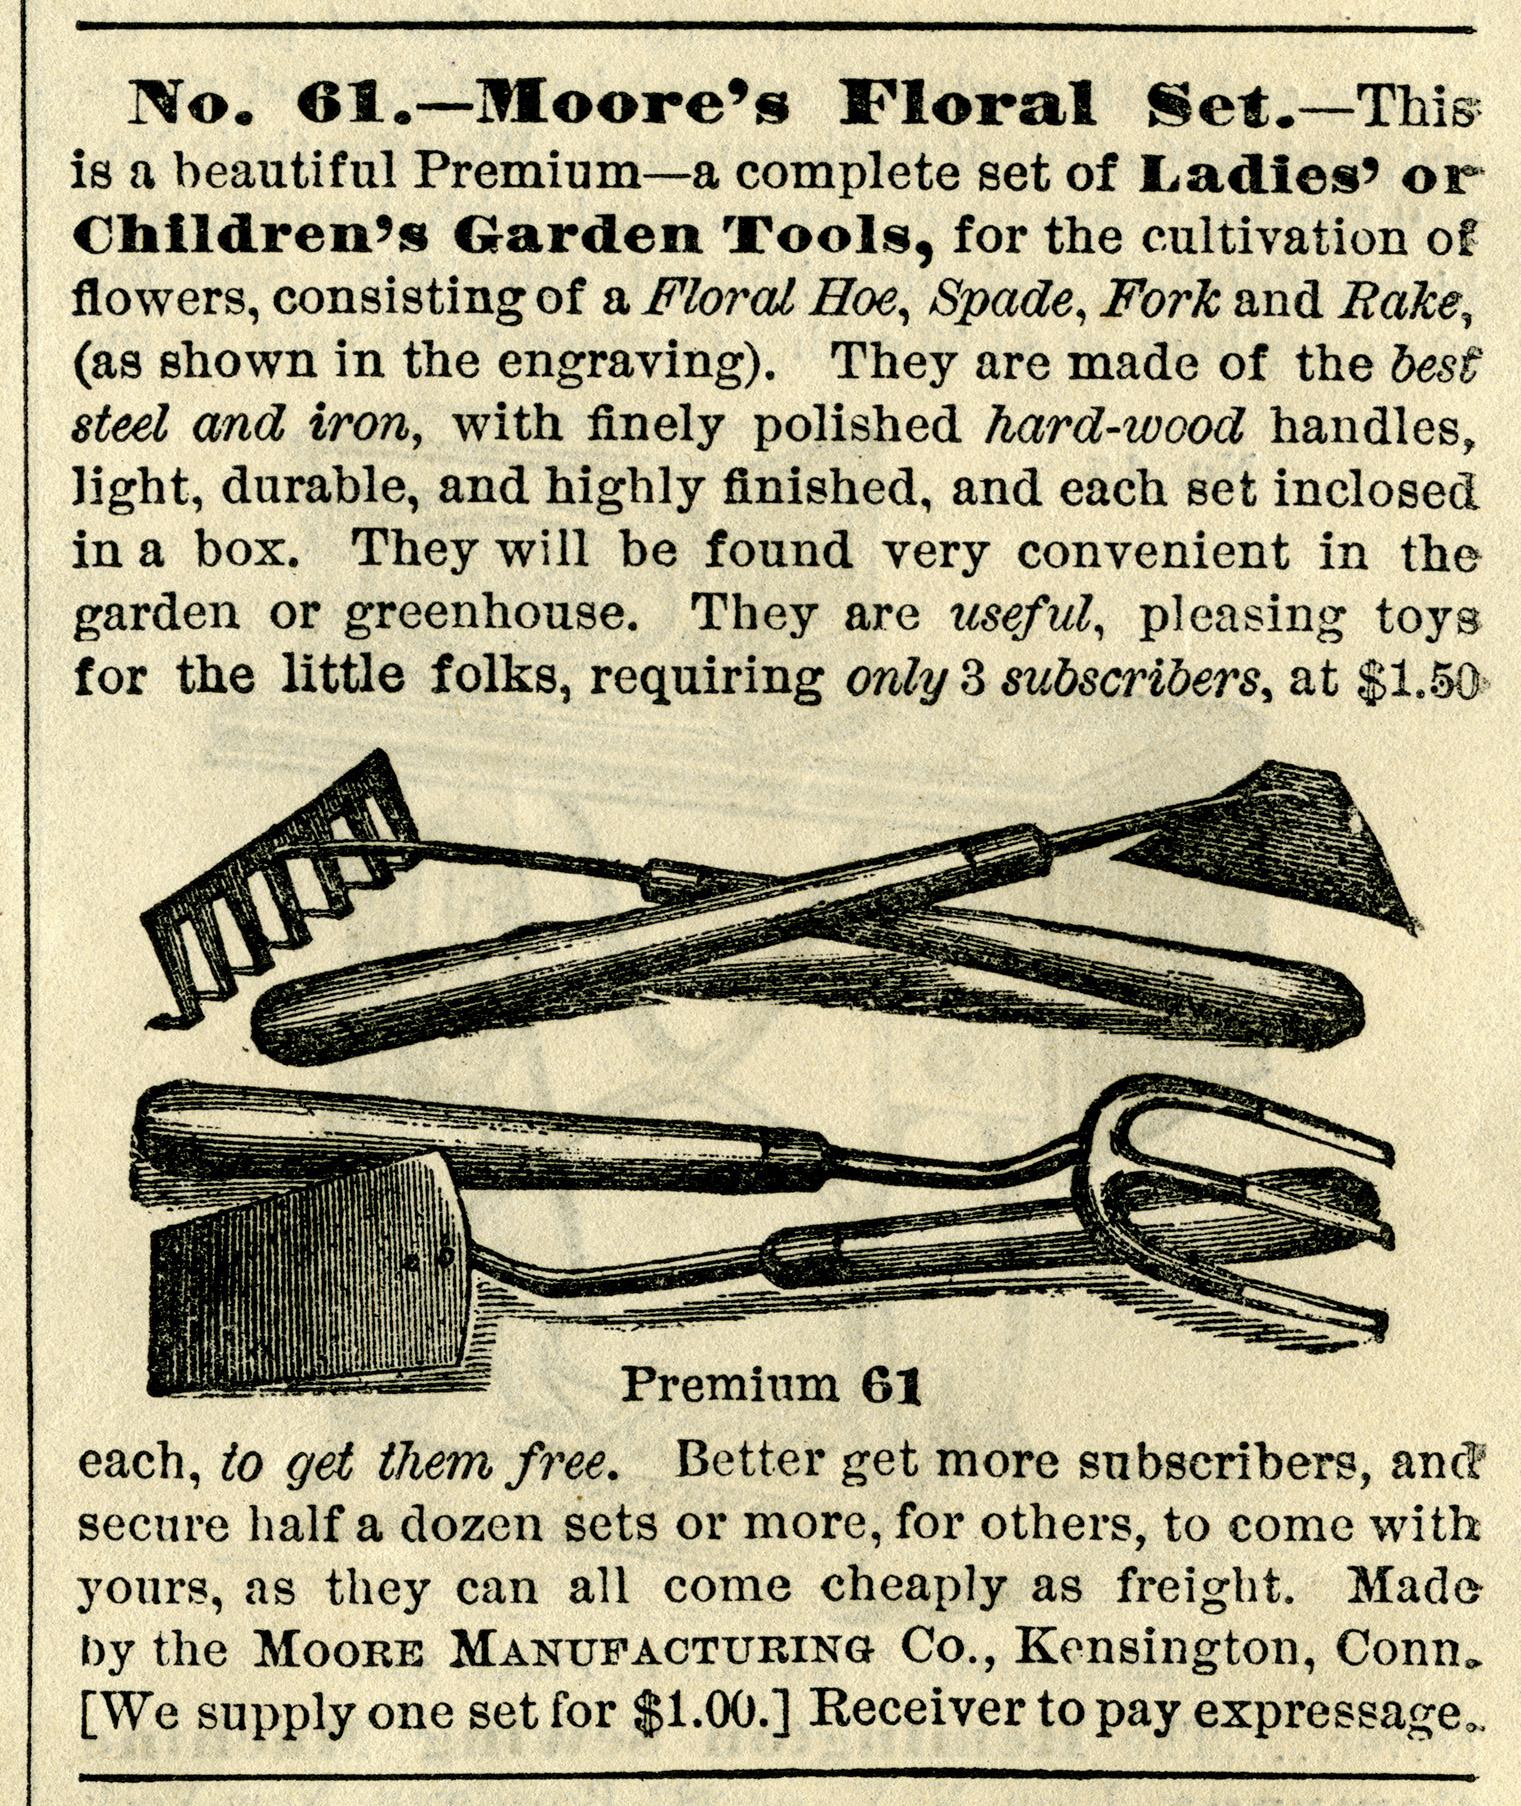 vintage garden clipart, free black and white graphics, antique garden tools, vintage magazine advertising, hoe spade fork rake illustration